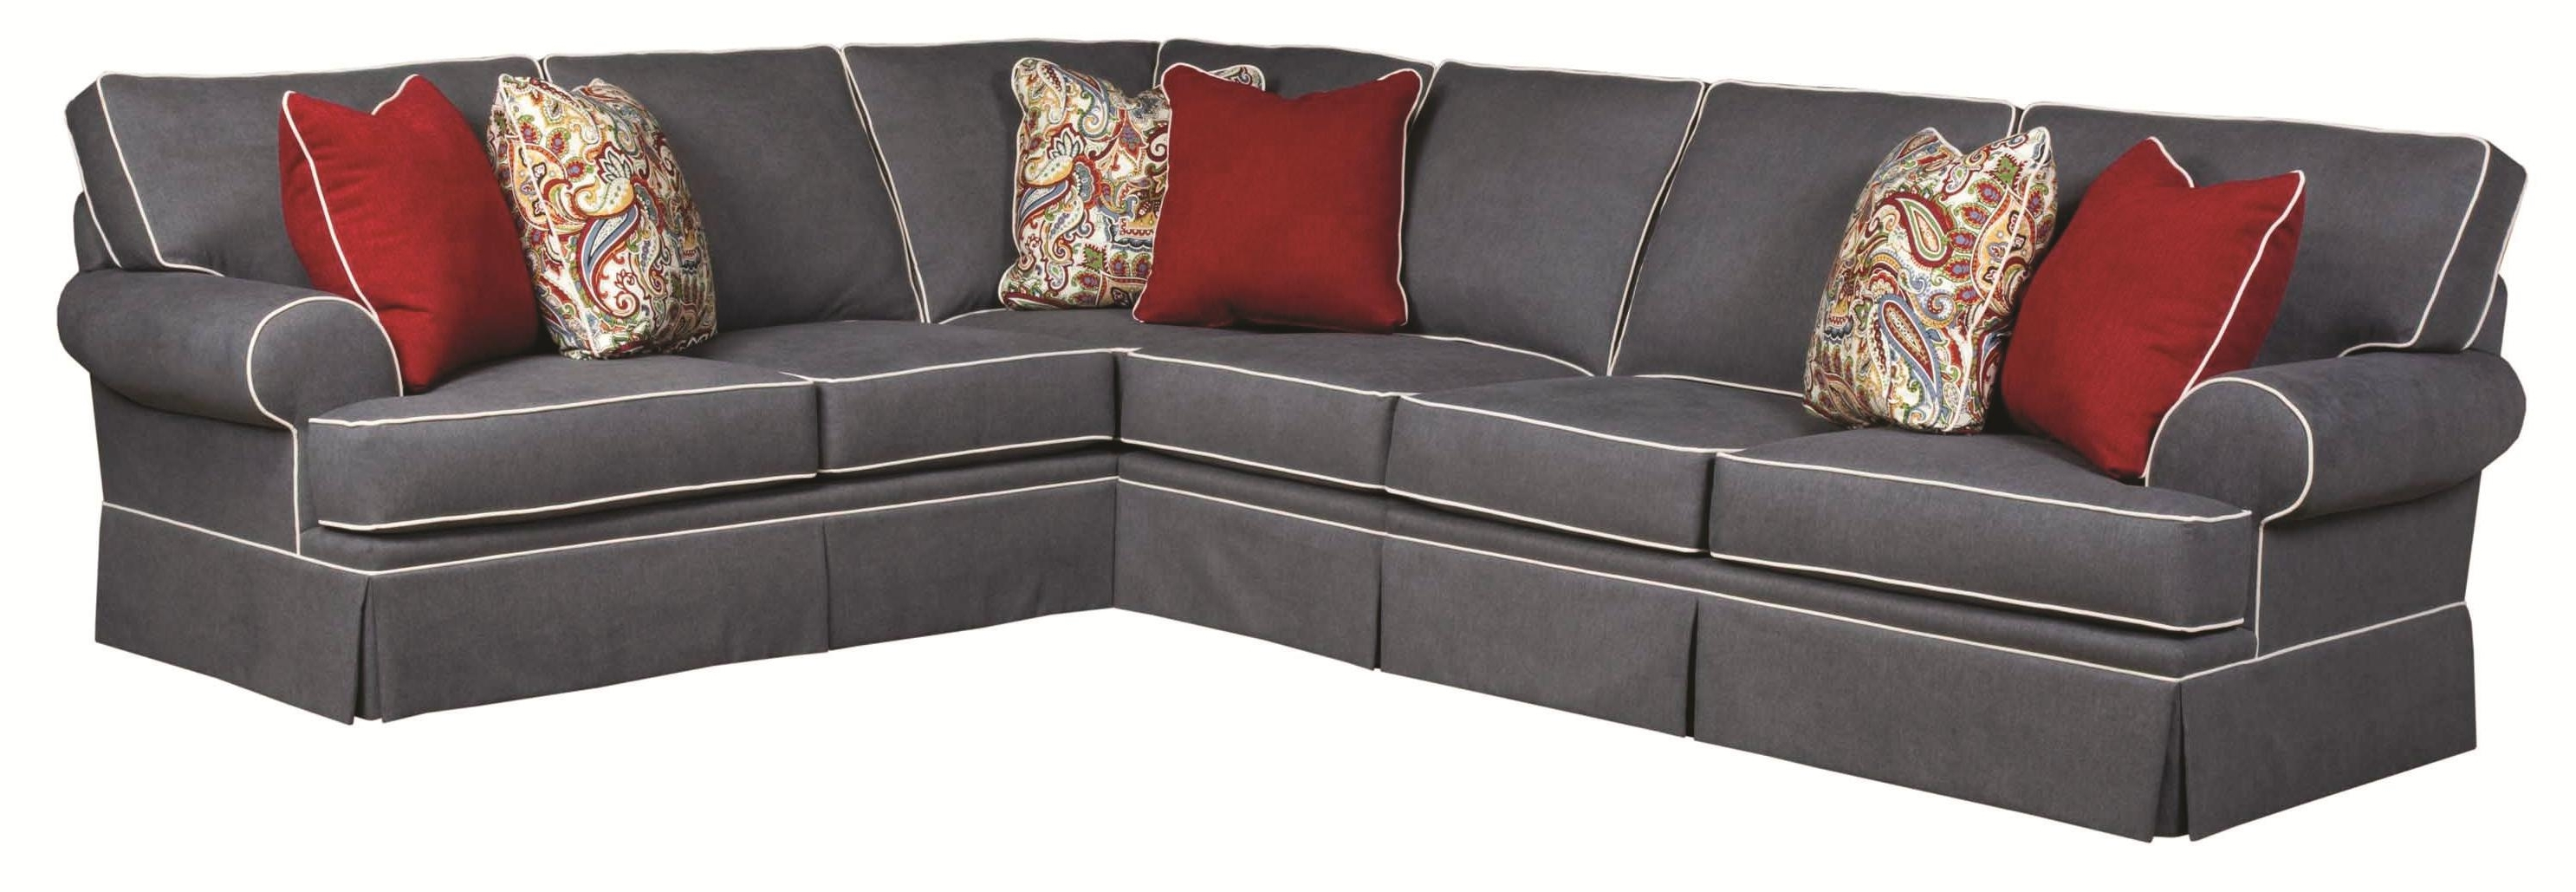 Current Broyhill Sectional Sofas Pertaining To Broyhill Furniture Emily Traditional 3 Piece Sectional Sofa With (View 12 of 20)